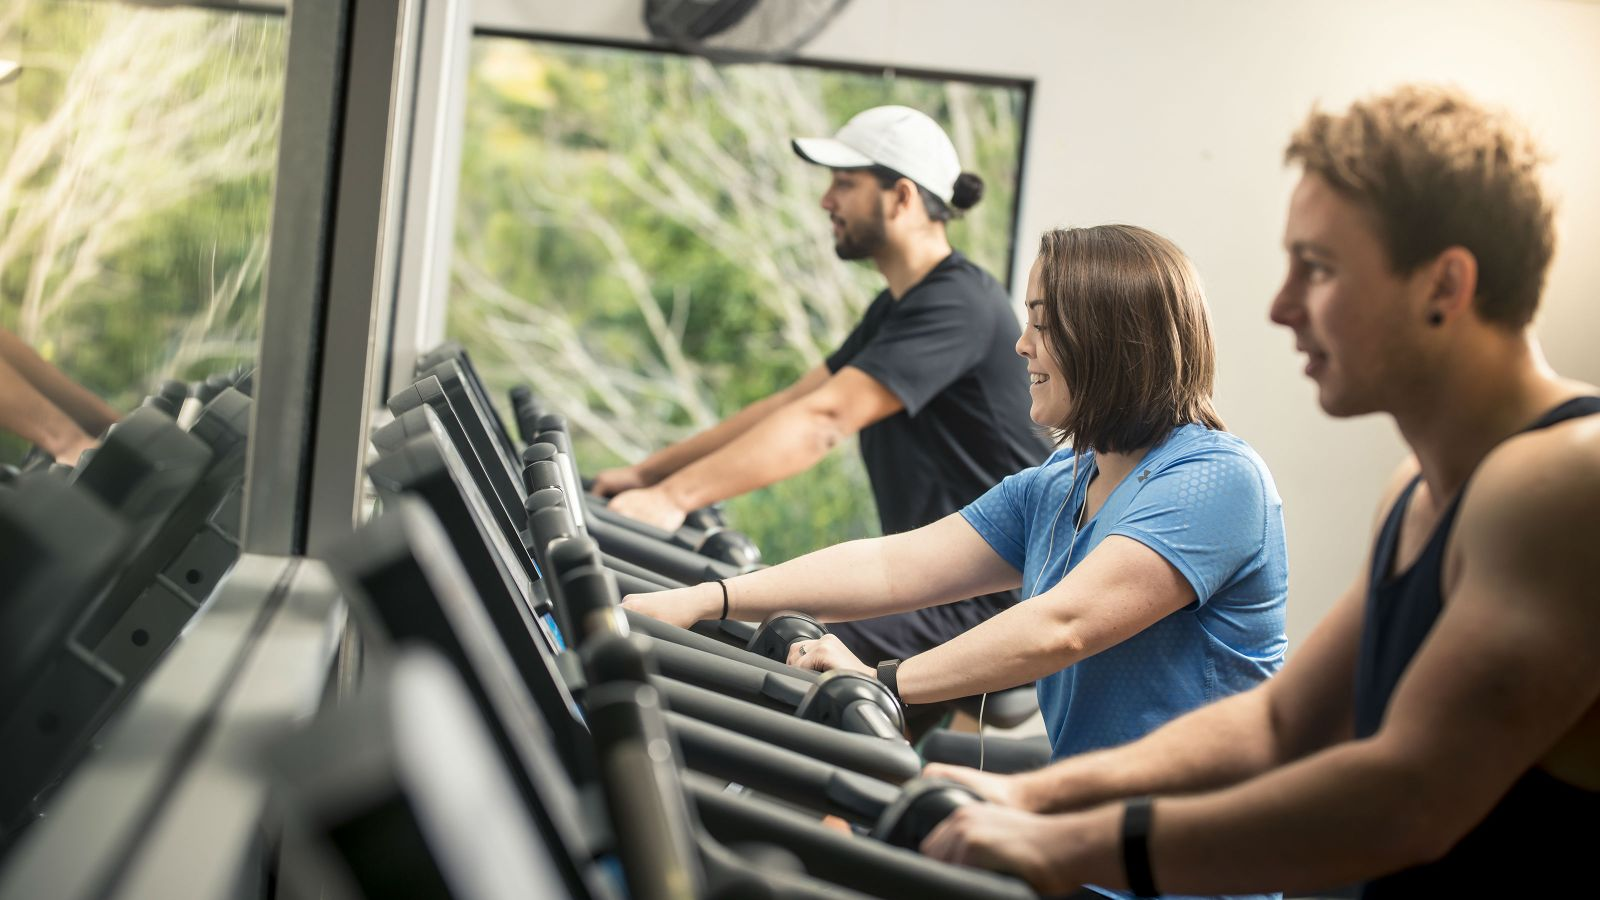 Two men and a woman working out on exercise machines.